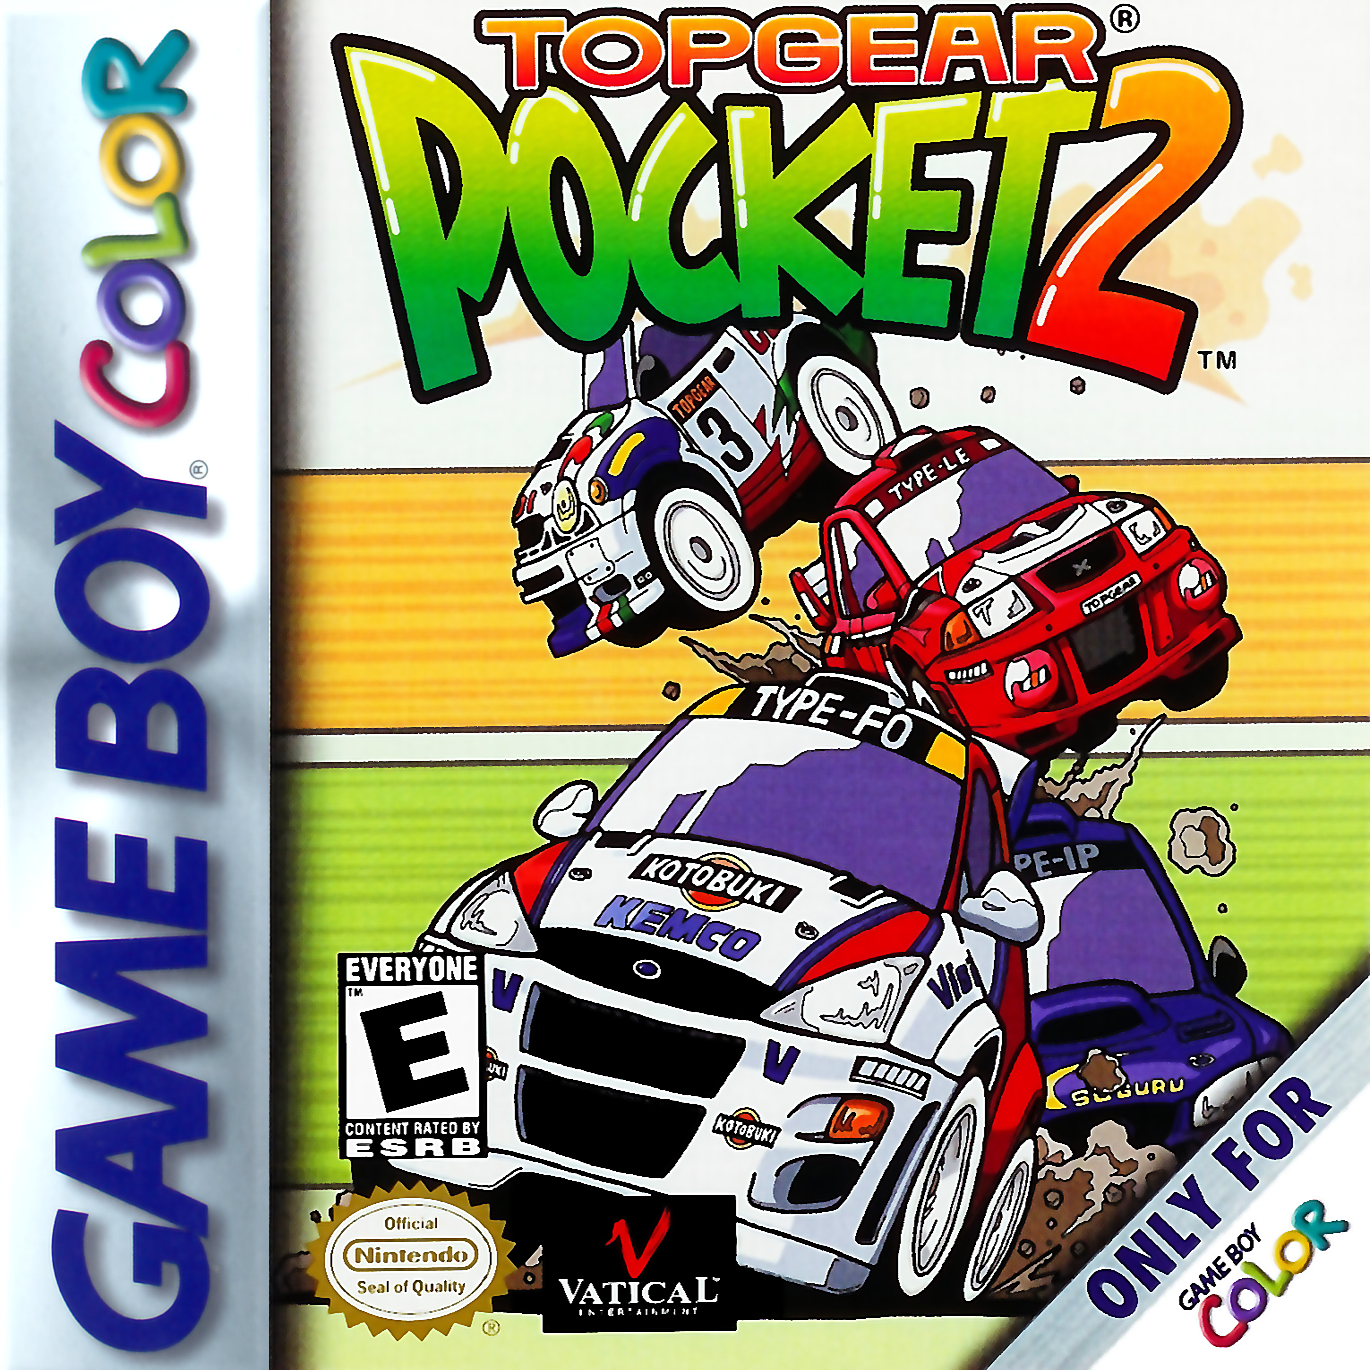 Game boy color online games - Play Top Gear Pocket 2 Nintendo Game Boy Color Online